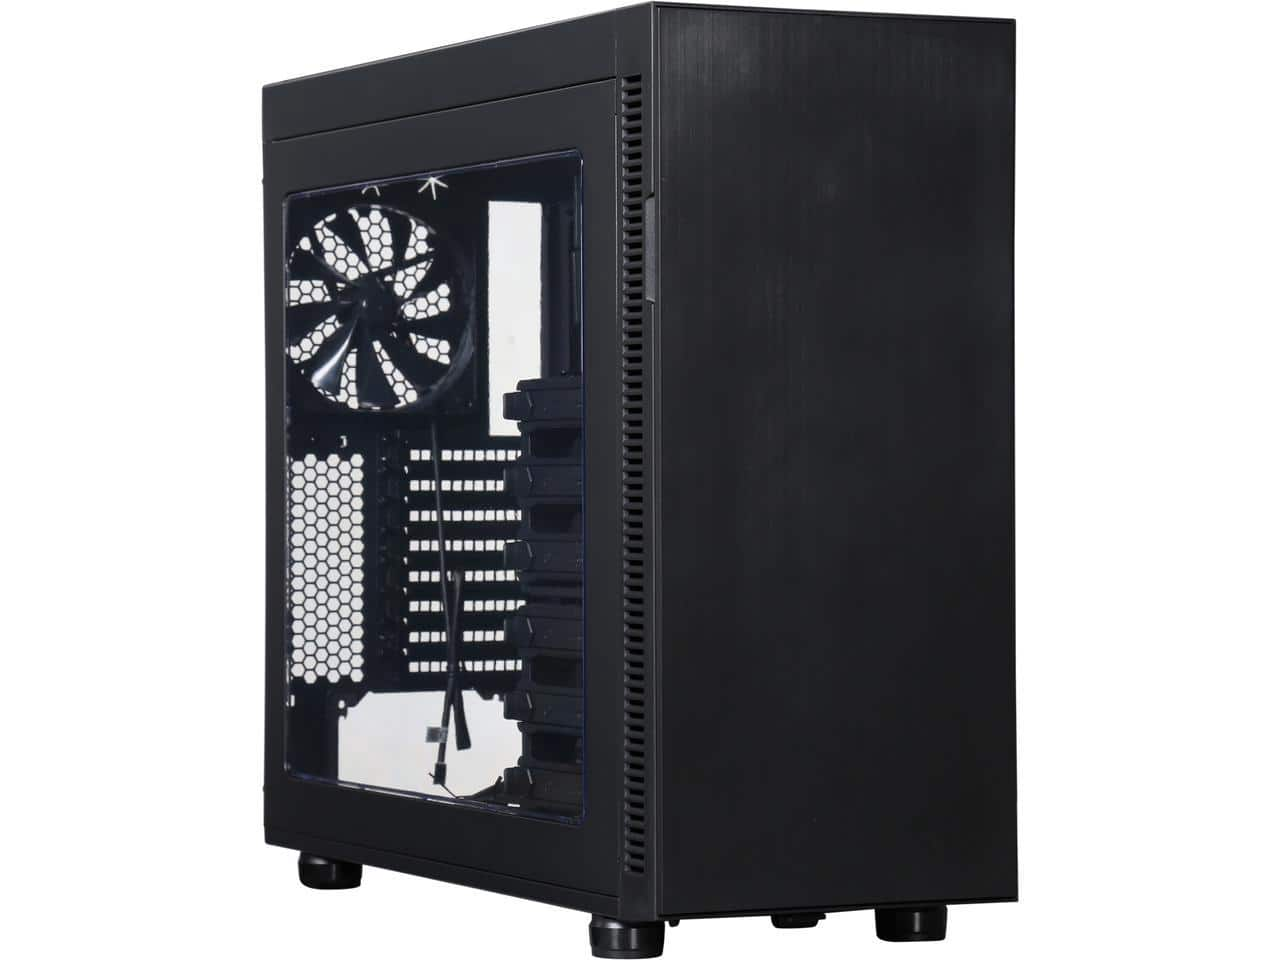 Thermaltake Suppressor F51 E-ATX Mid Tower Tt LCS Certified Gaming Silent Computer Case CA-1E1-00M1WN-00 w/FS $89.99